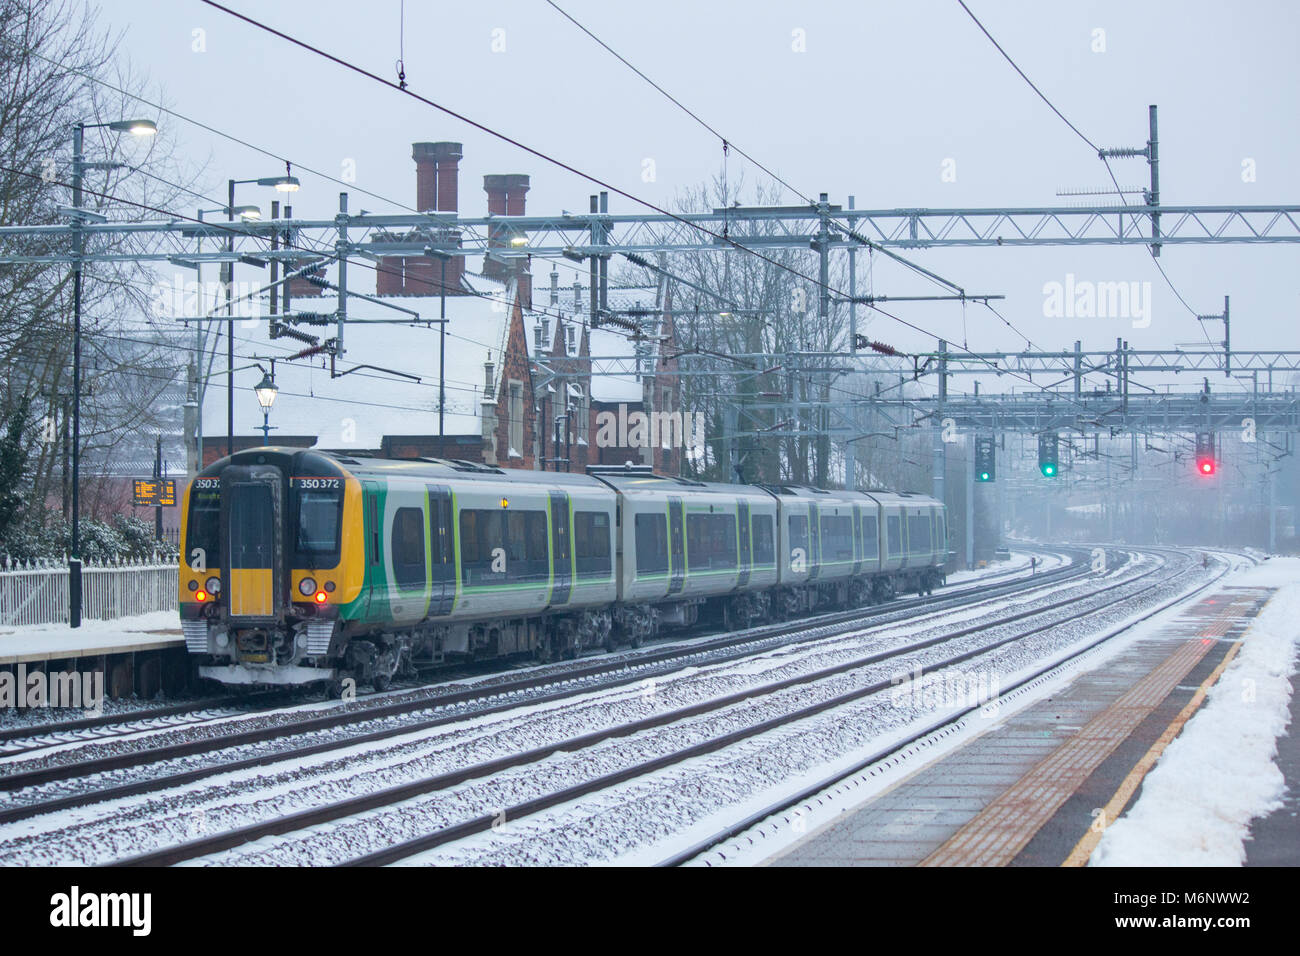 A south bound West Midlands Railway train departing Atherstone train Station covered in snow - Stock Image